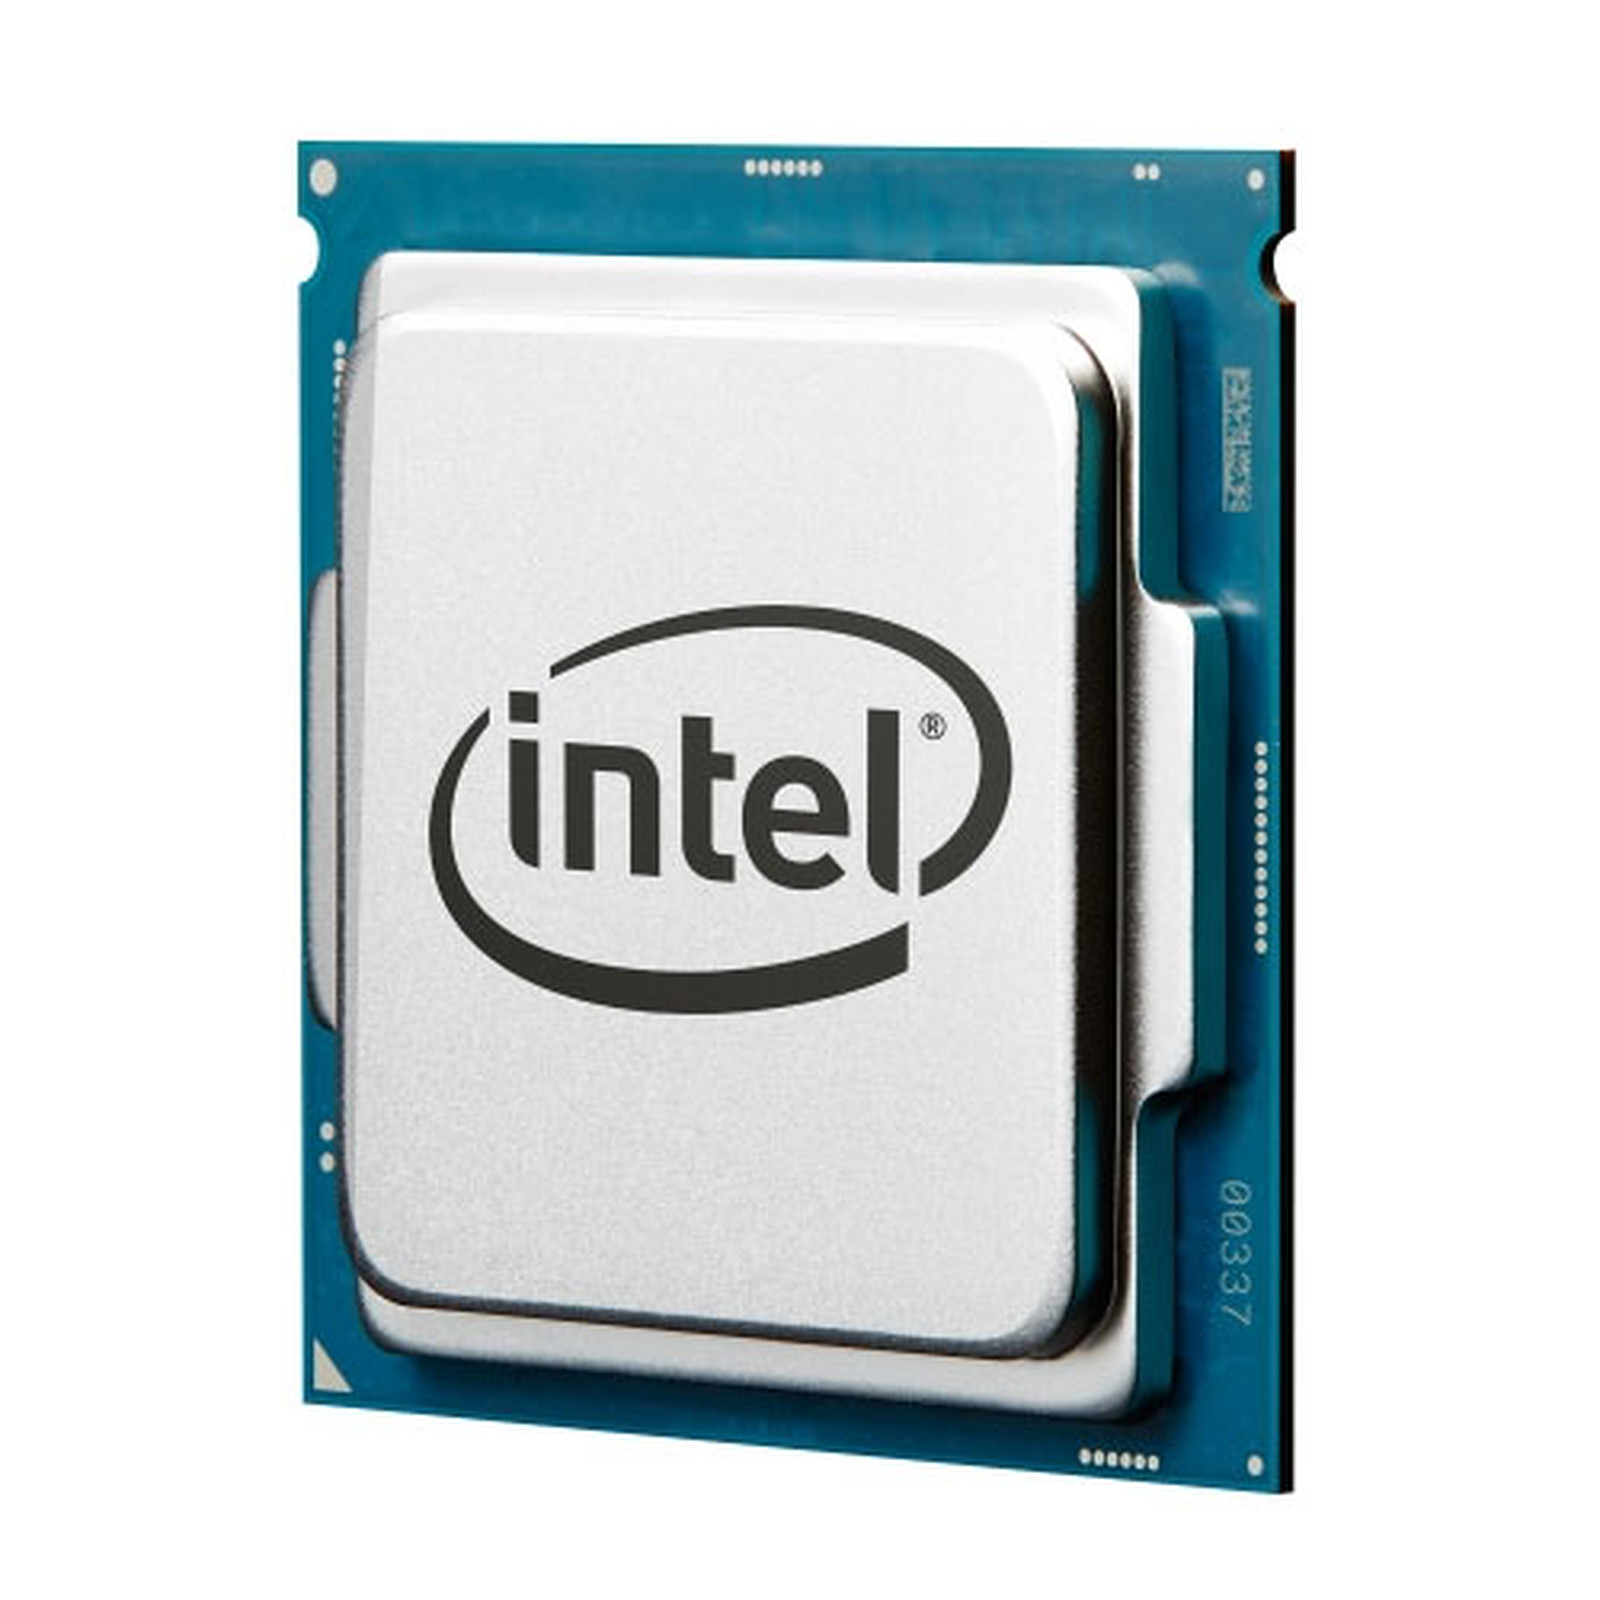 Intel Core I3-4100M (2.5 GHz)